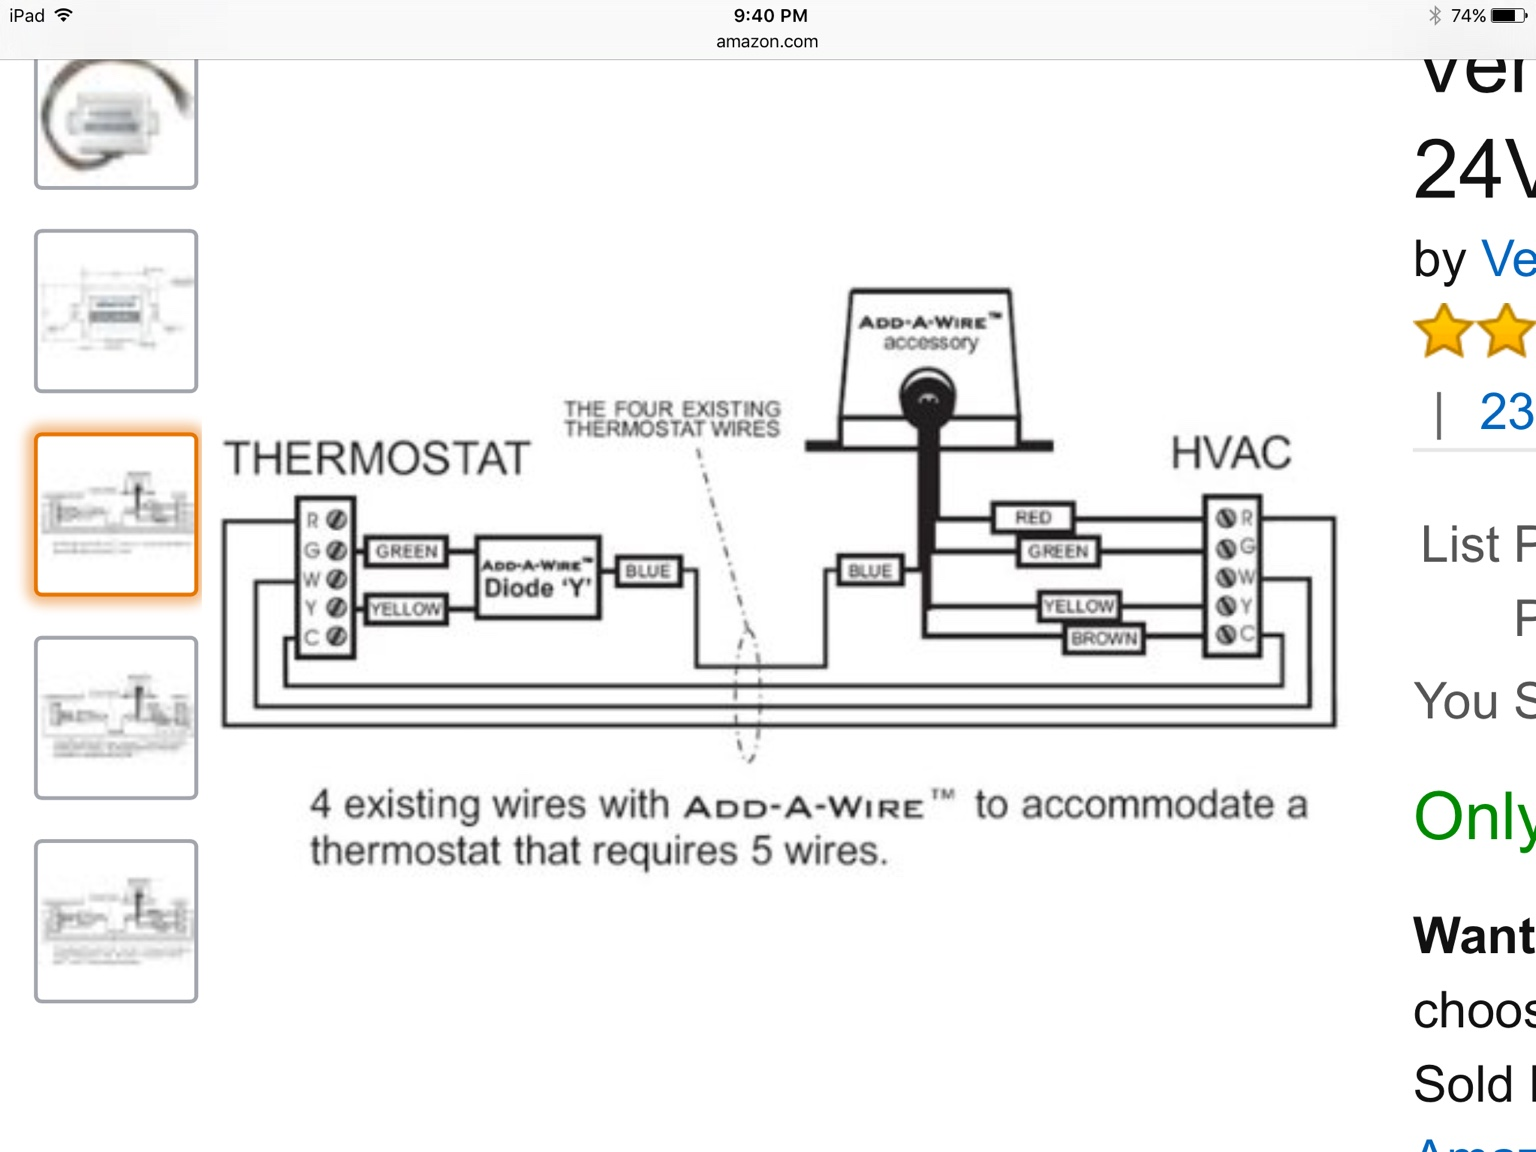 Wiring diagram for insteon thermostat free download wiring diagram free download wiring diagram question about insteon thermostat wiring how are you using isy of asfbconference2016 Choice Image